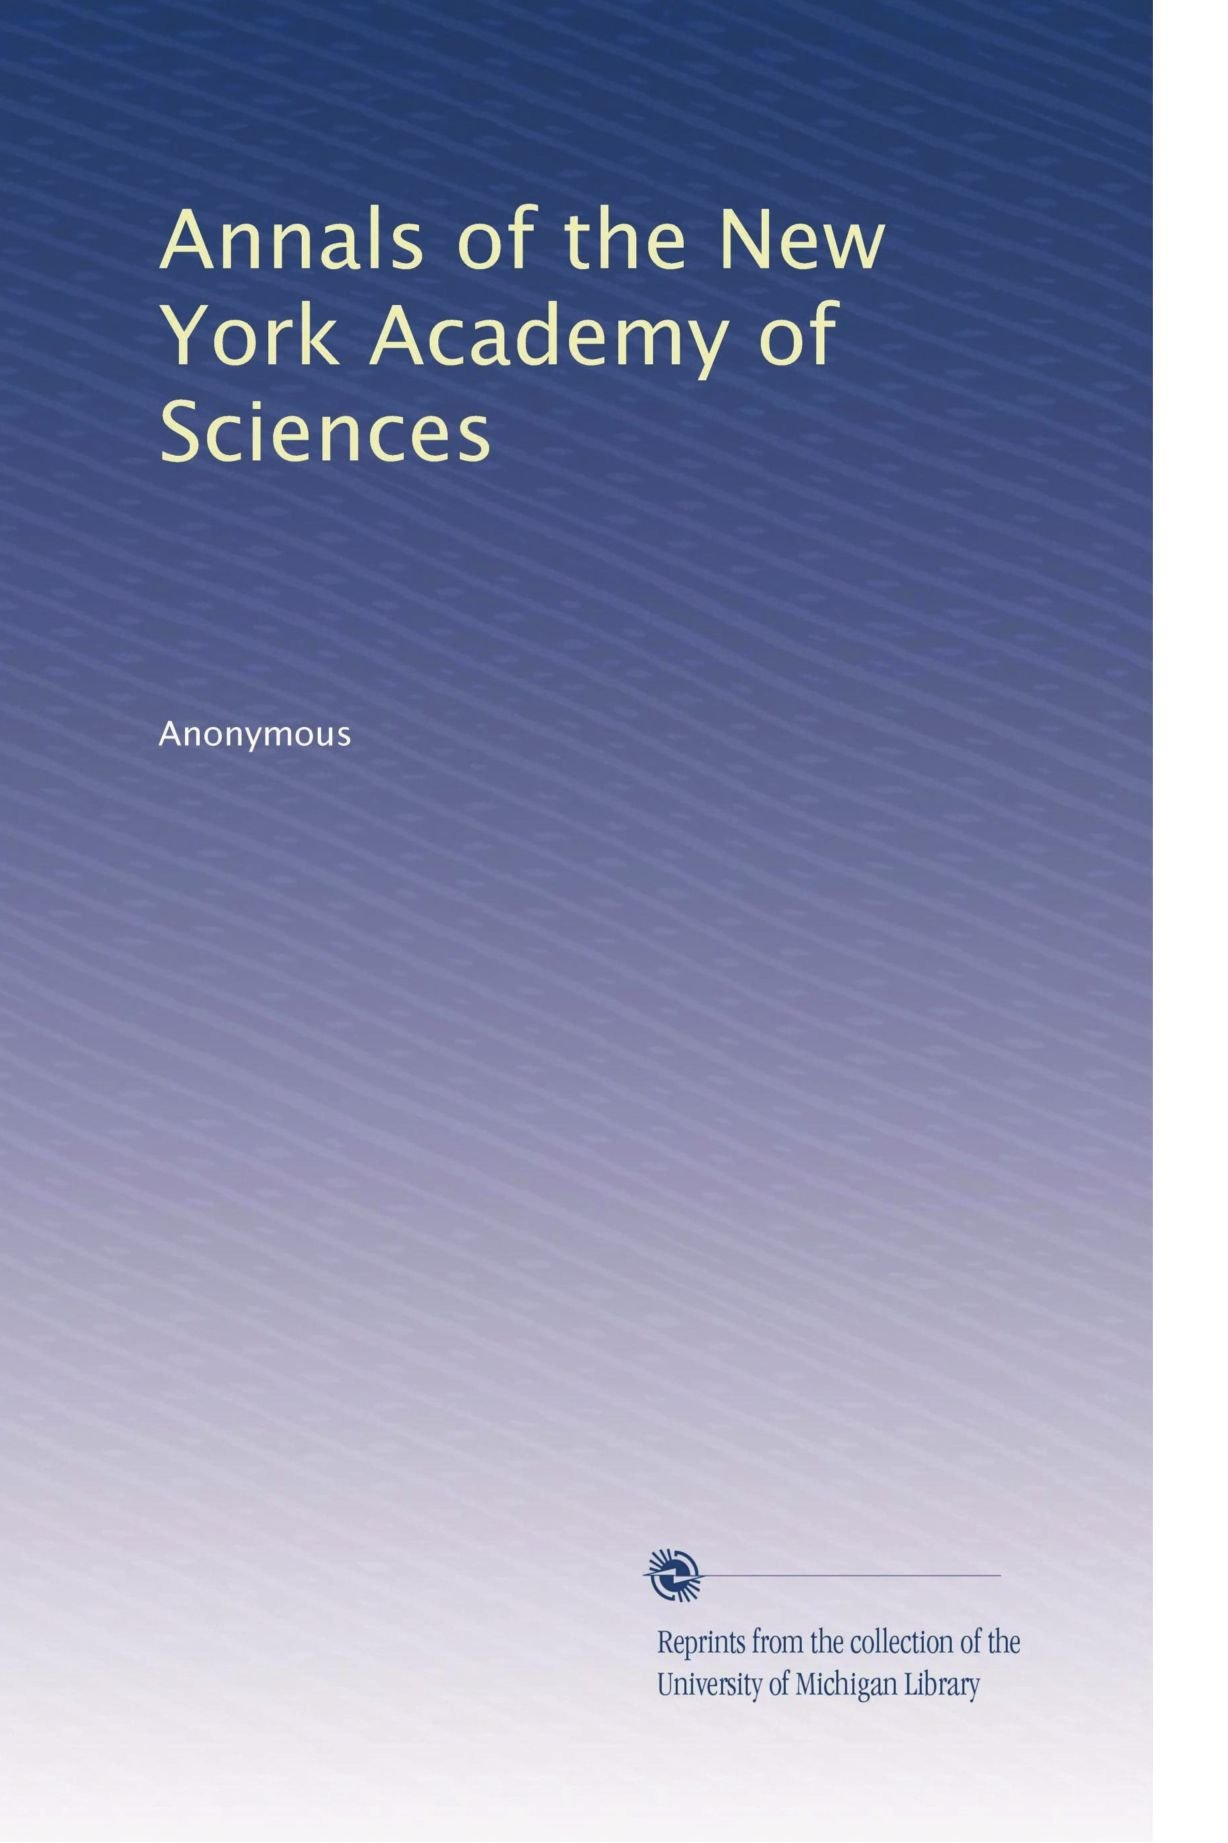 Download Annals of the New York Academy of Sciences (Volume 26) PDF